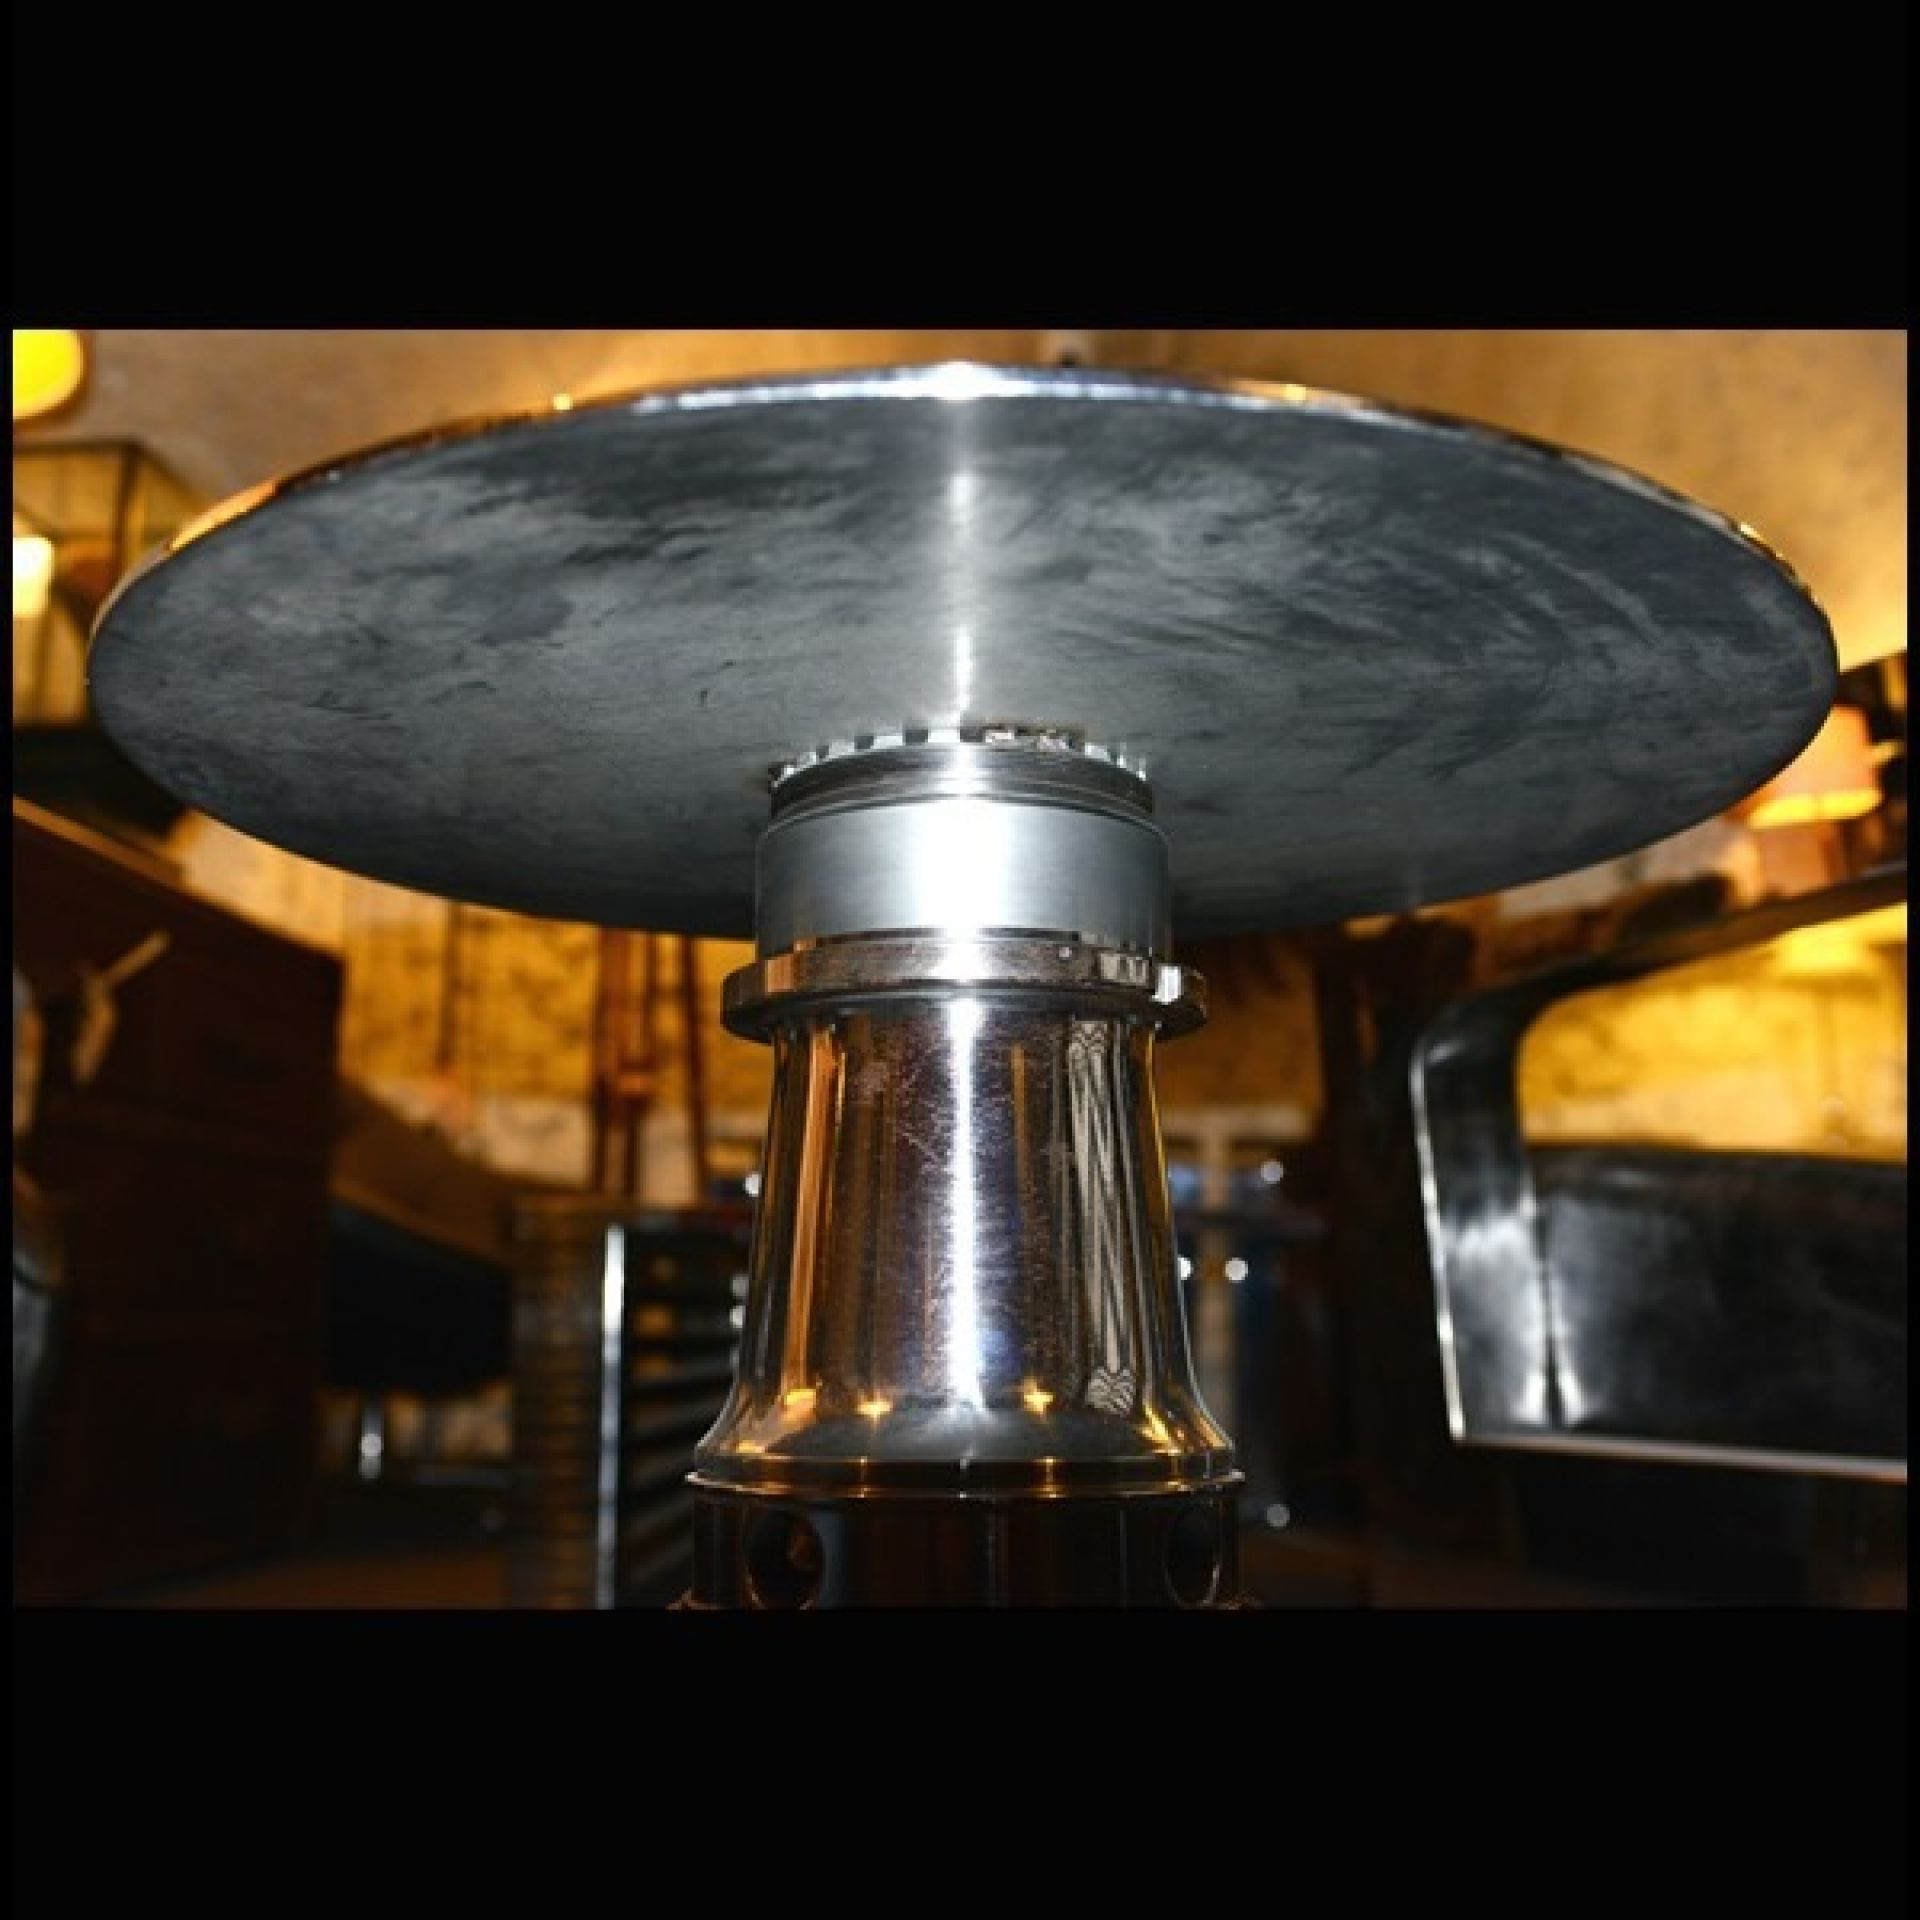 SIDE TABLE MADE FROM A BOEING PC-BOEING 747 AIRCRAFT ENGINE TITANIUM GEAR